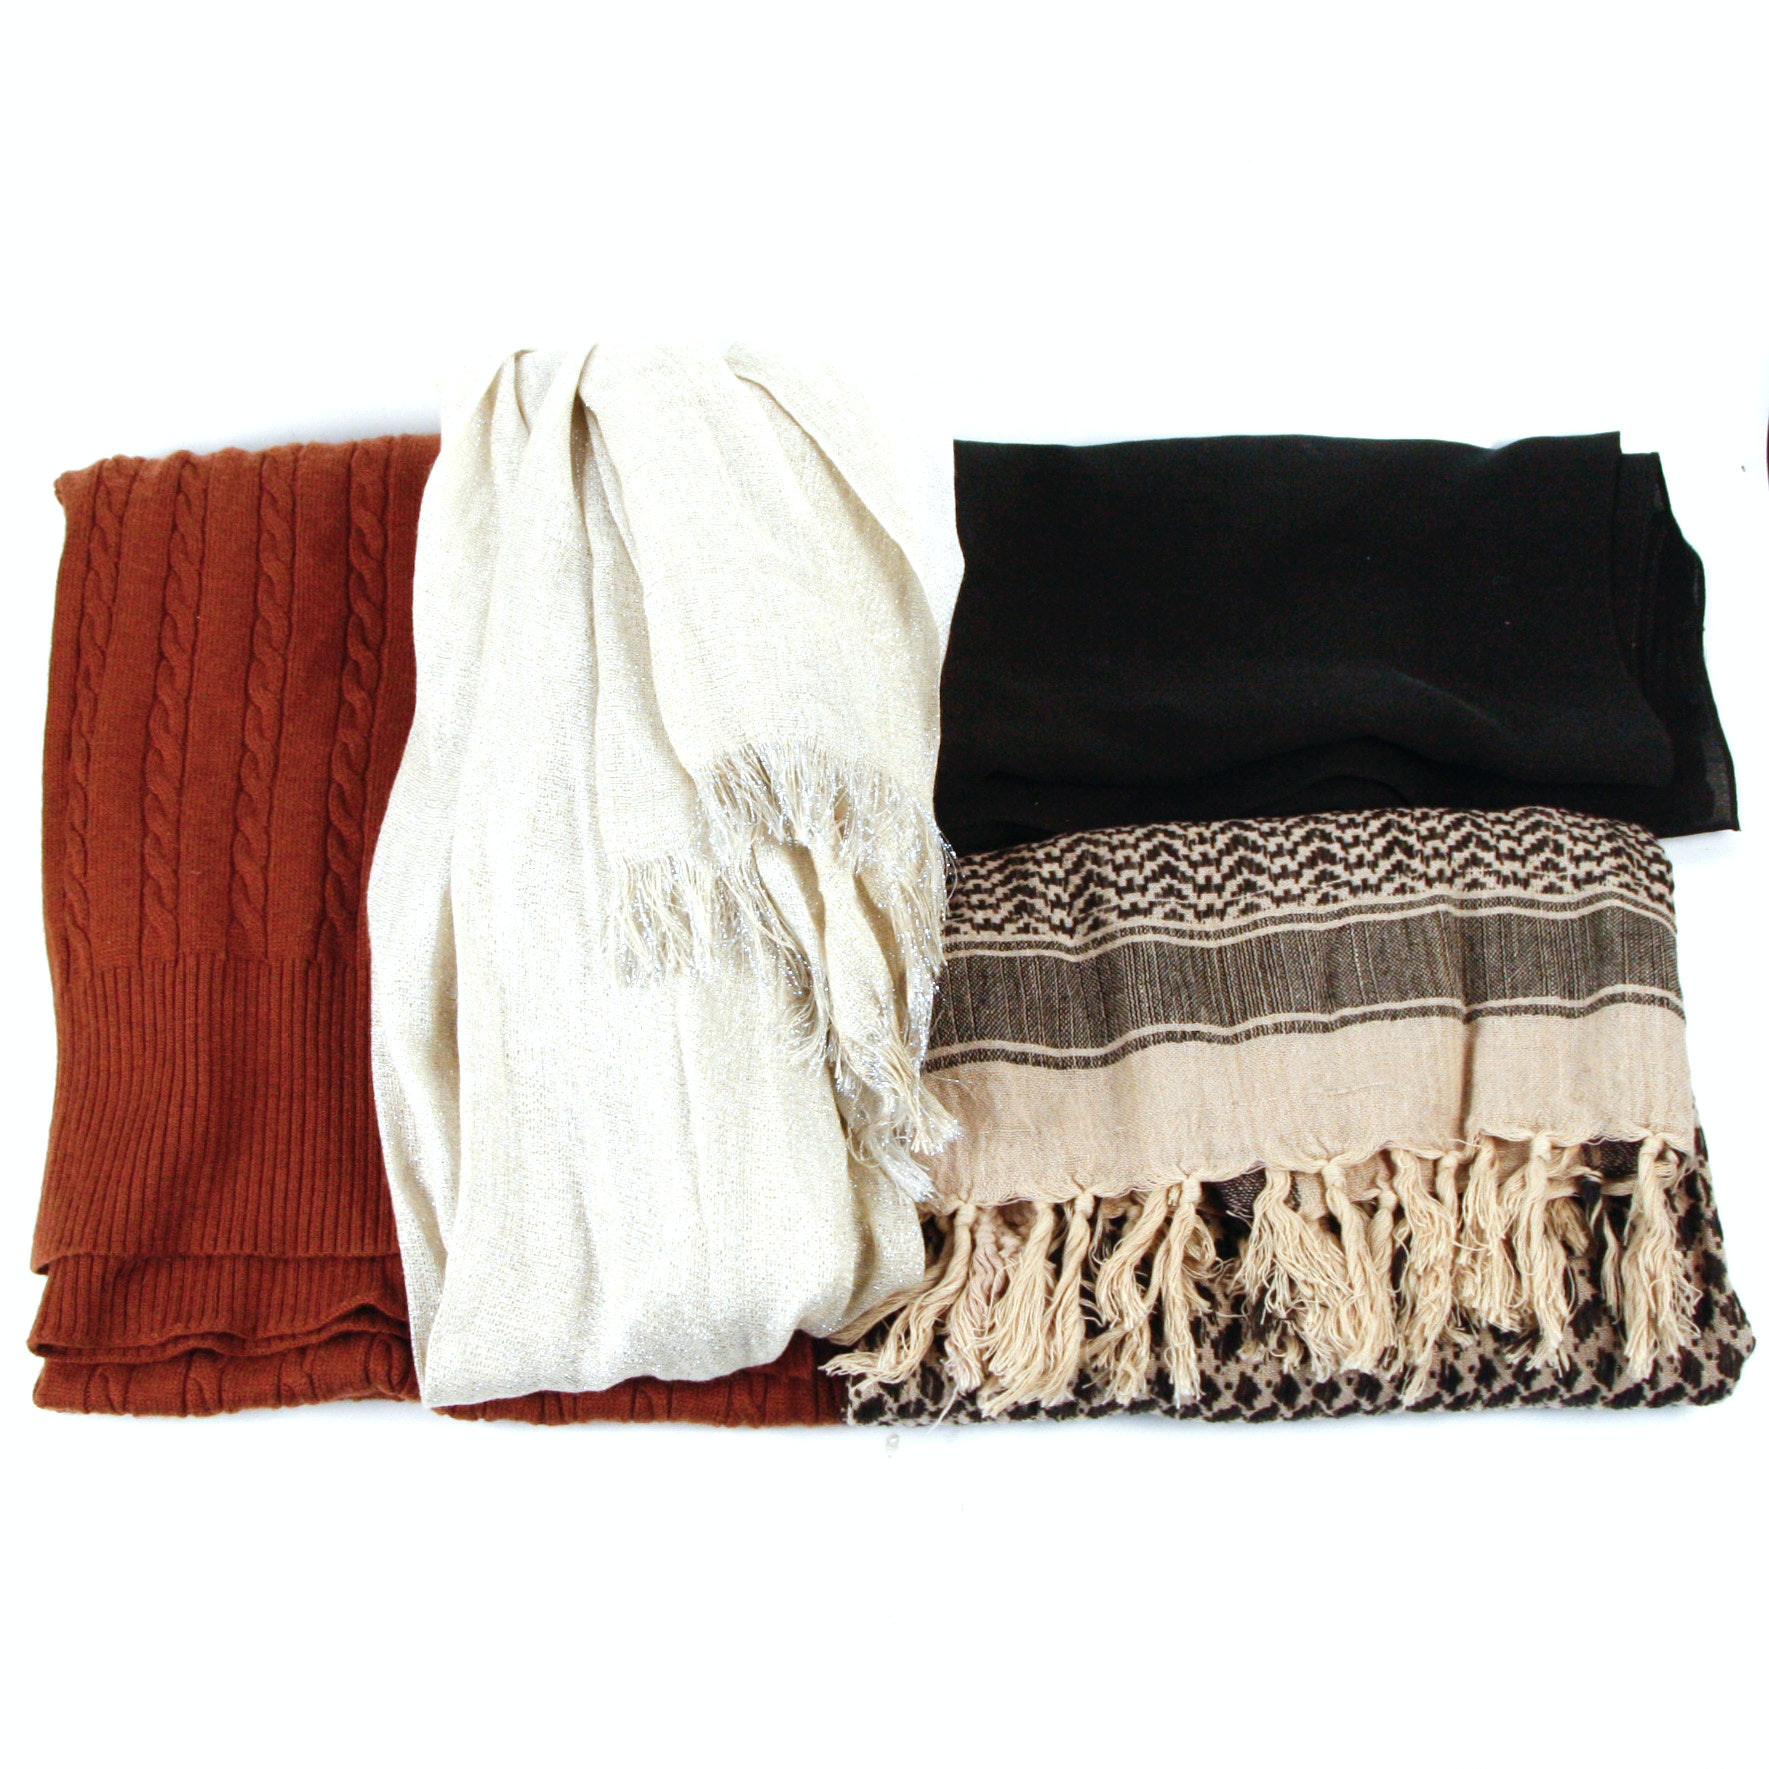 Grouping of Four Scarves